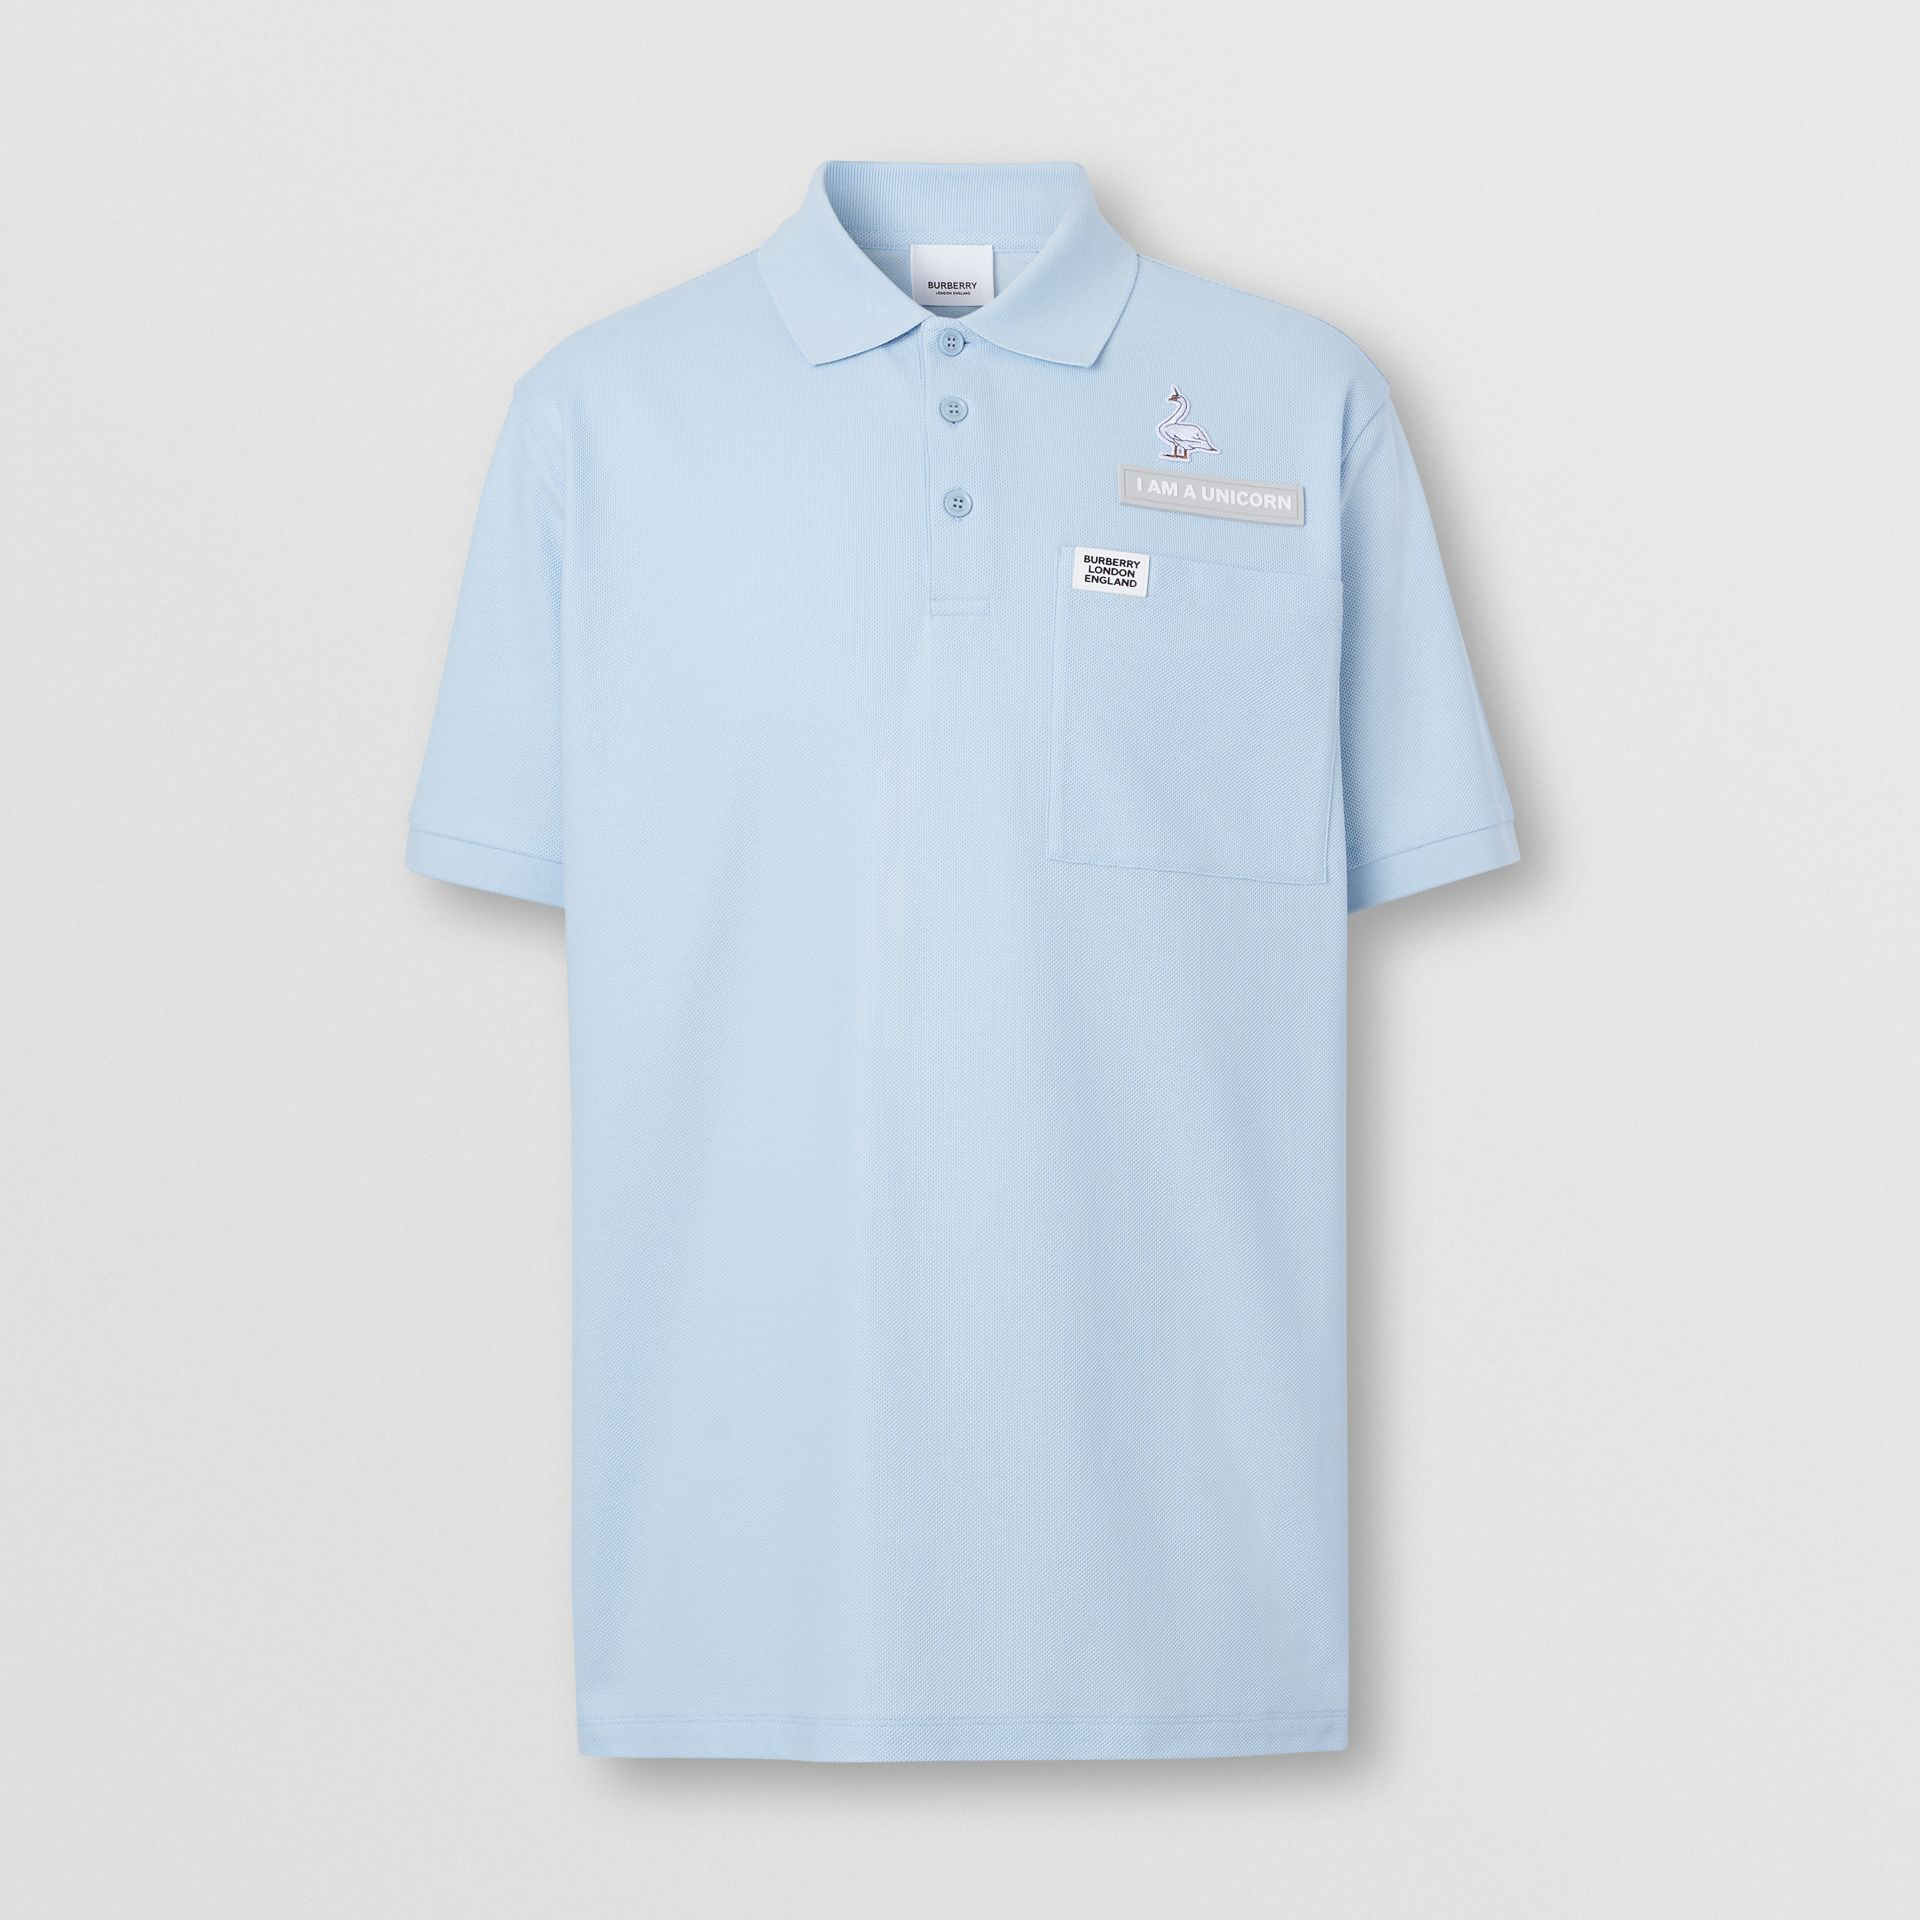 Swan and Slogan Appliqué Cotton Polo Shirt in Pale Blue - Men | Burberry - gallery image 3